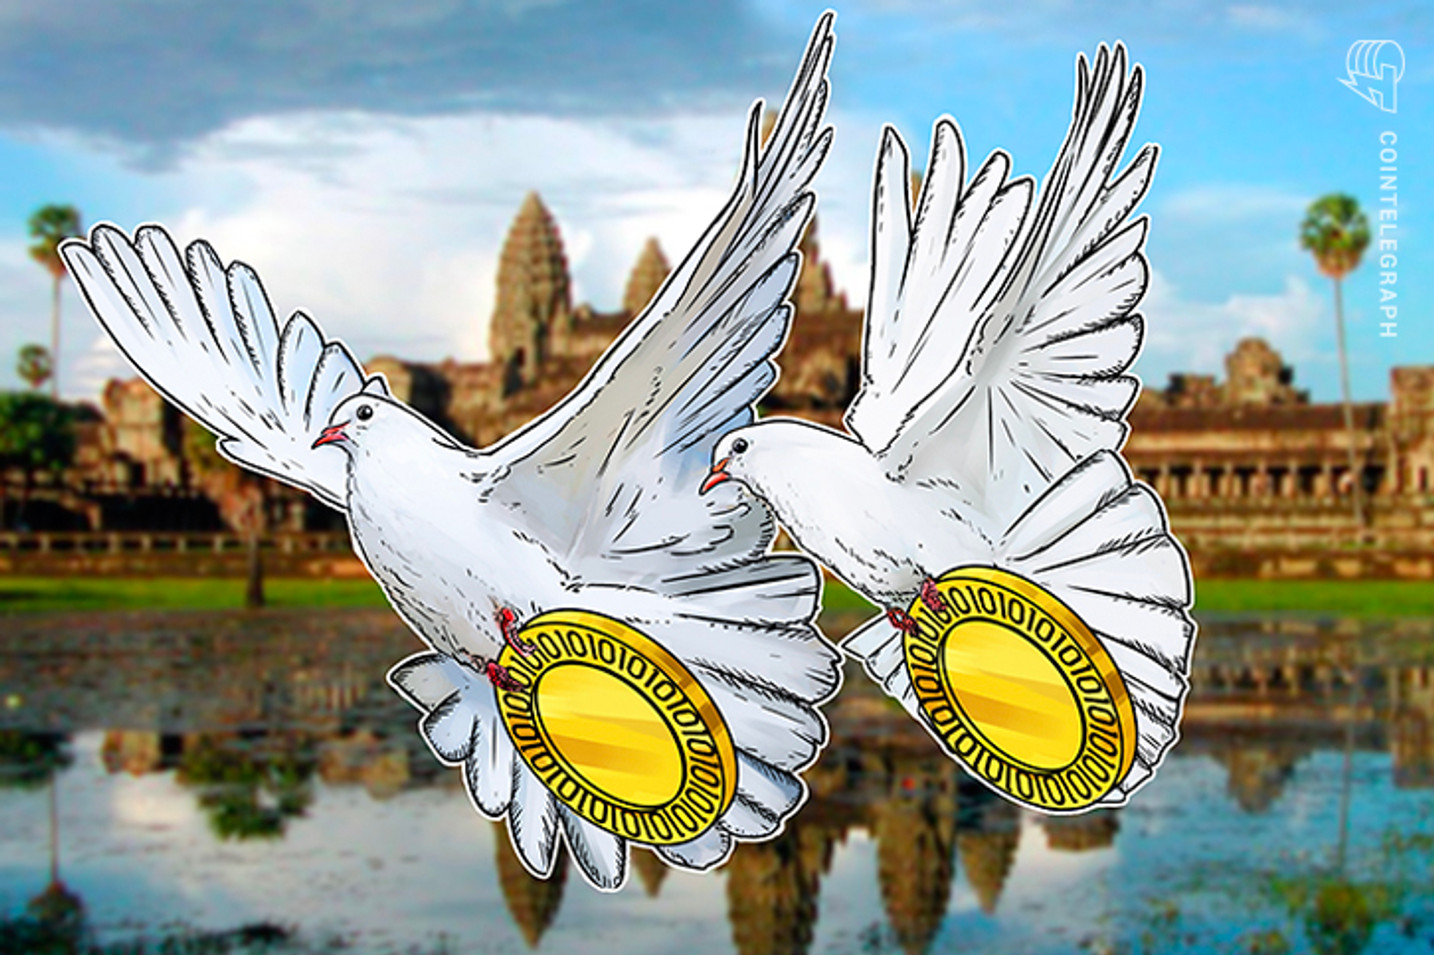 Inspired By Venezuelan Petro, Cambodia May Issue A National Cryptocurrency